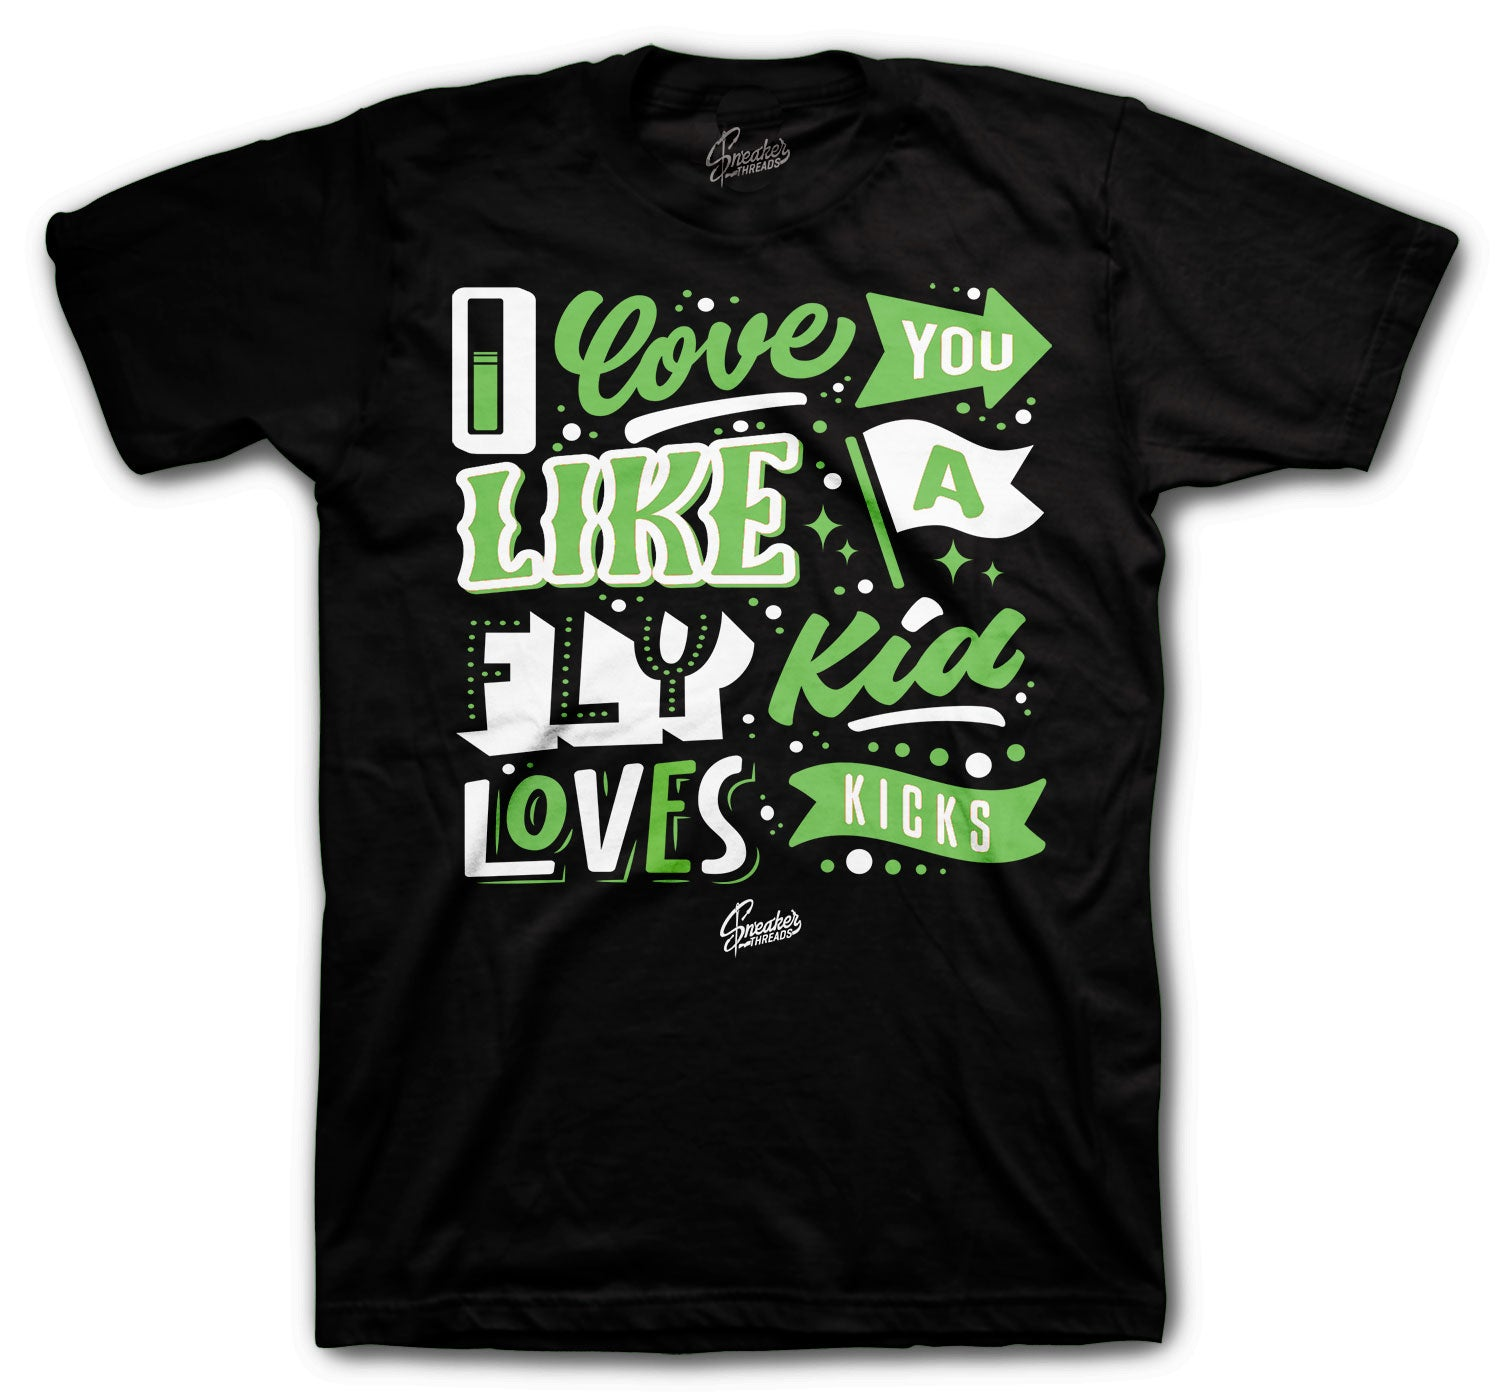 T shirt collection matching with zen green Jordan 1 sneaker collection